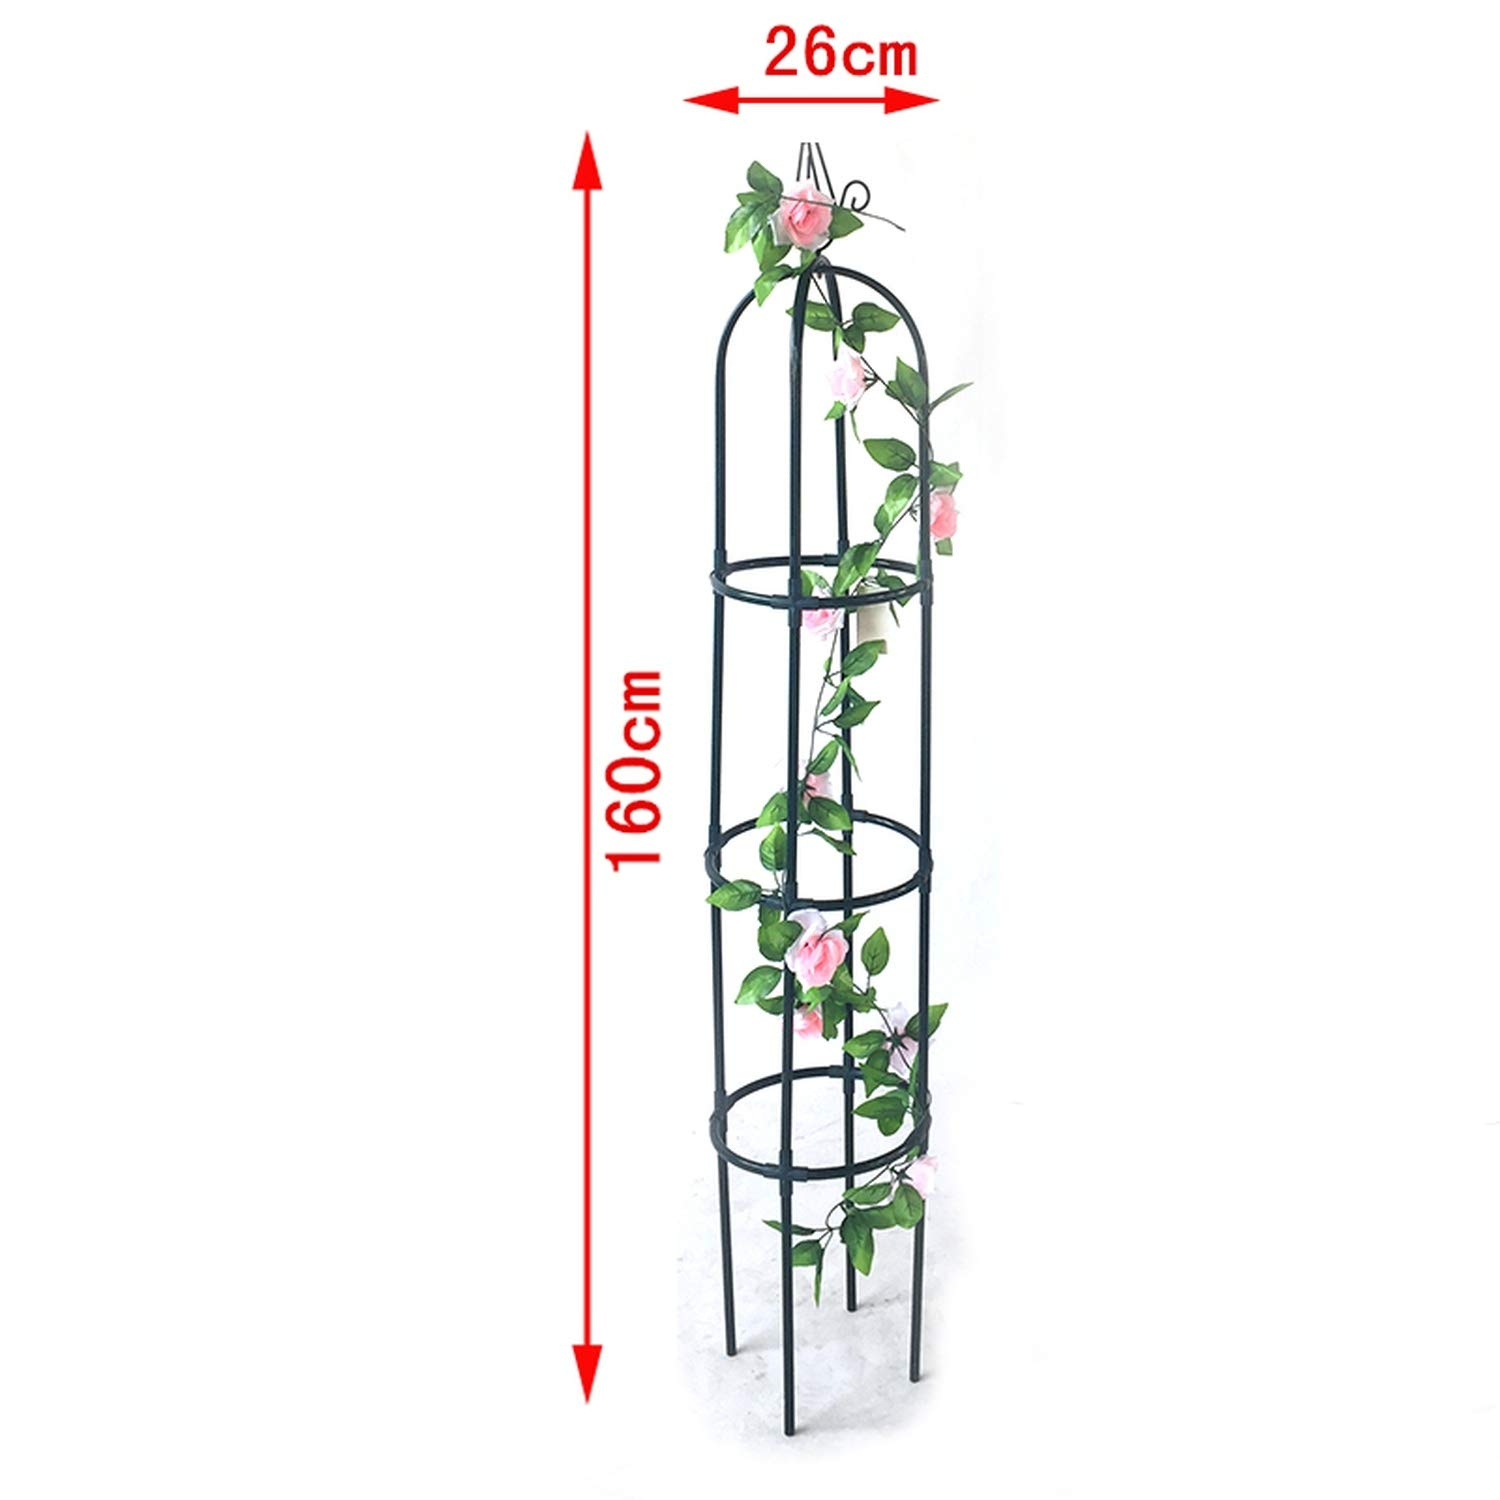 63 inch Garden Plant Trellis Metal Trellis Flower Support for Climbing Vines and Plants Green